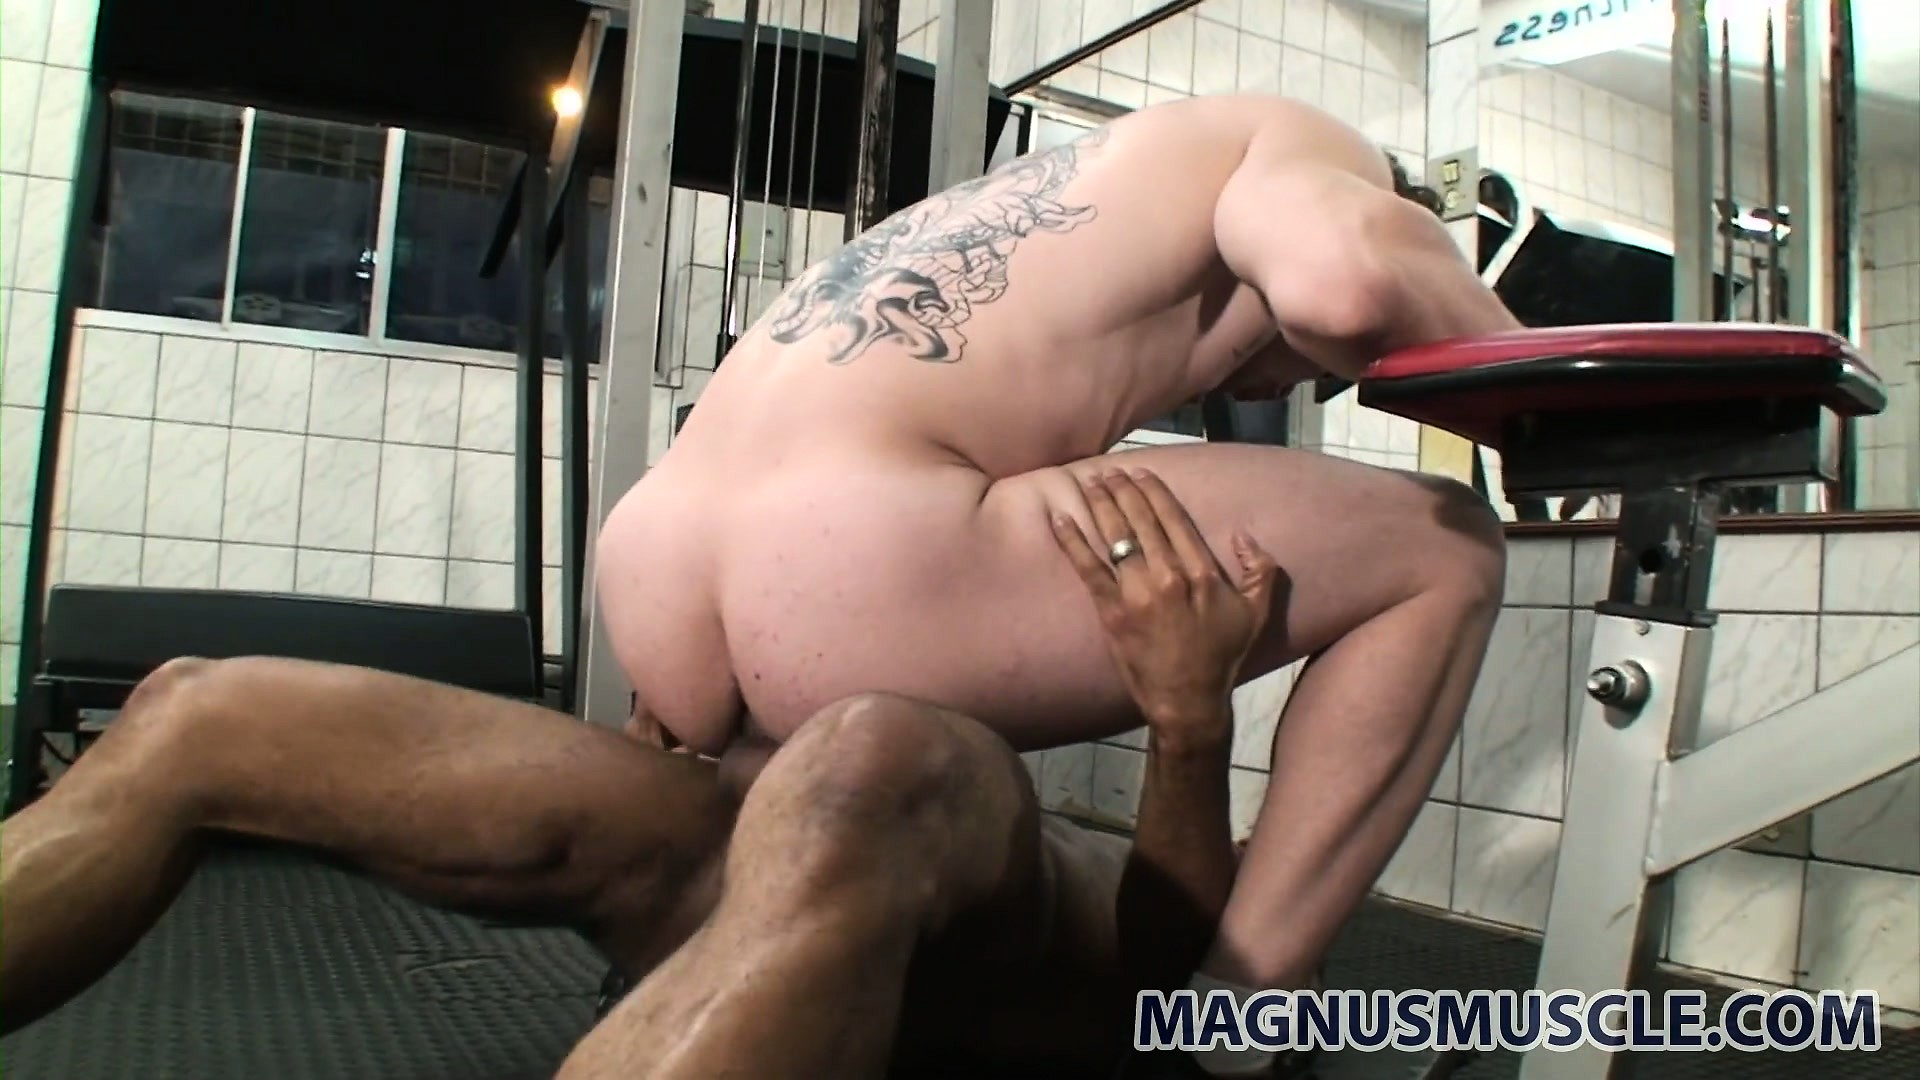 Porno Video of Intense Black-on-white And Vice Versa Gay Fucking With Arcanjo And Jhonathan